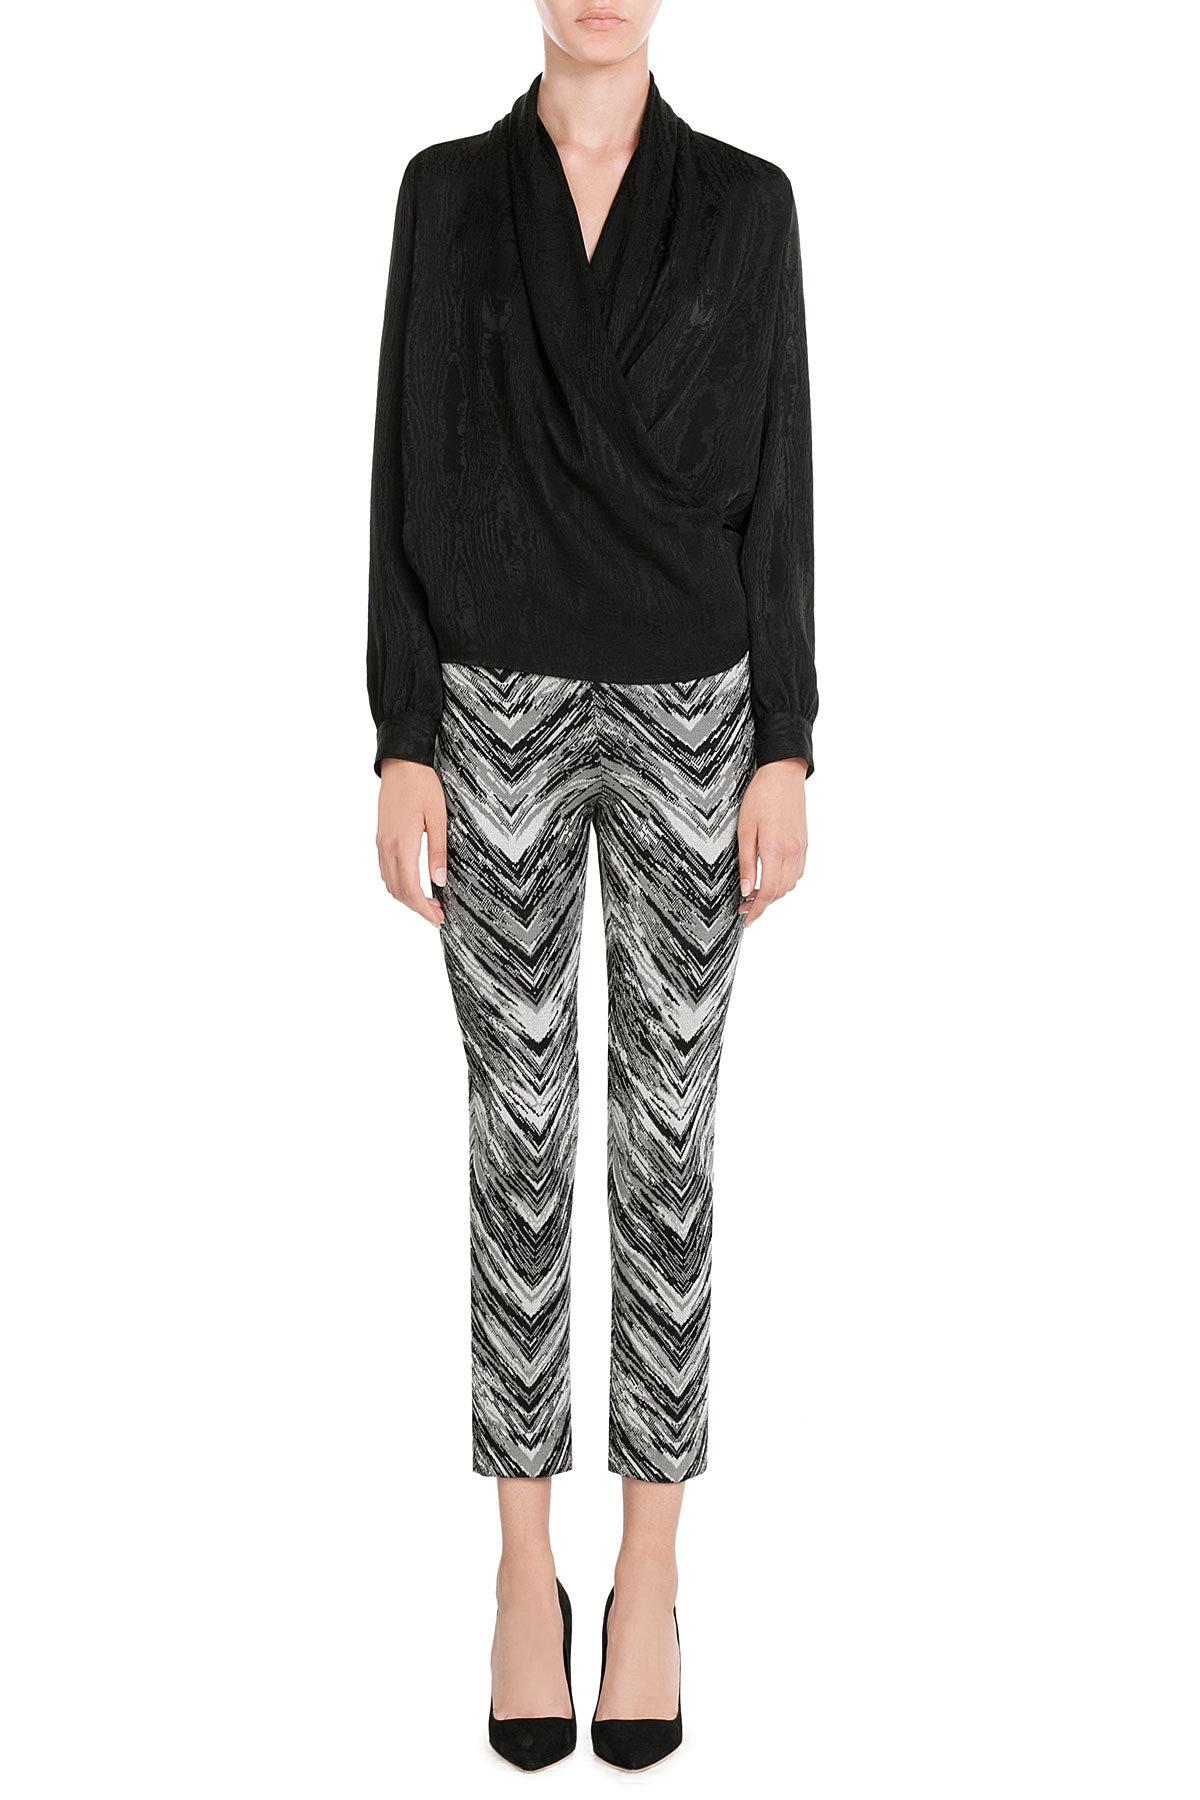 Missoni Cropped Knit Trousers in Black